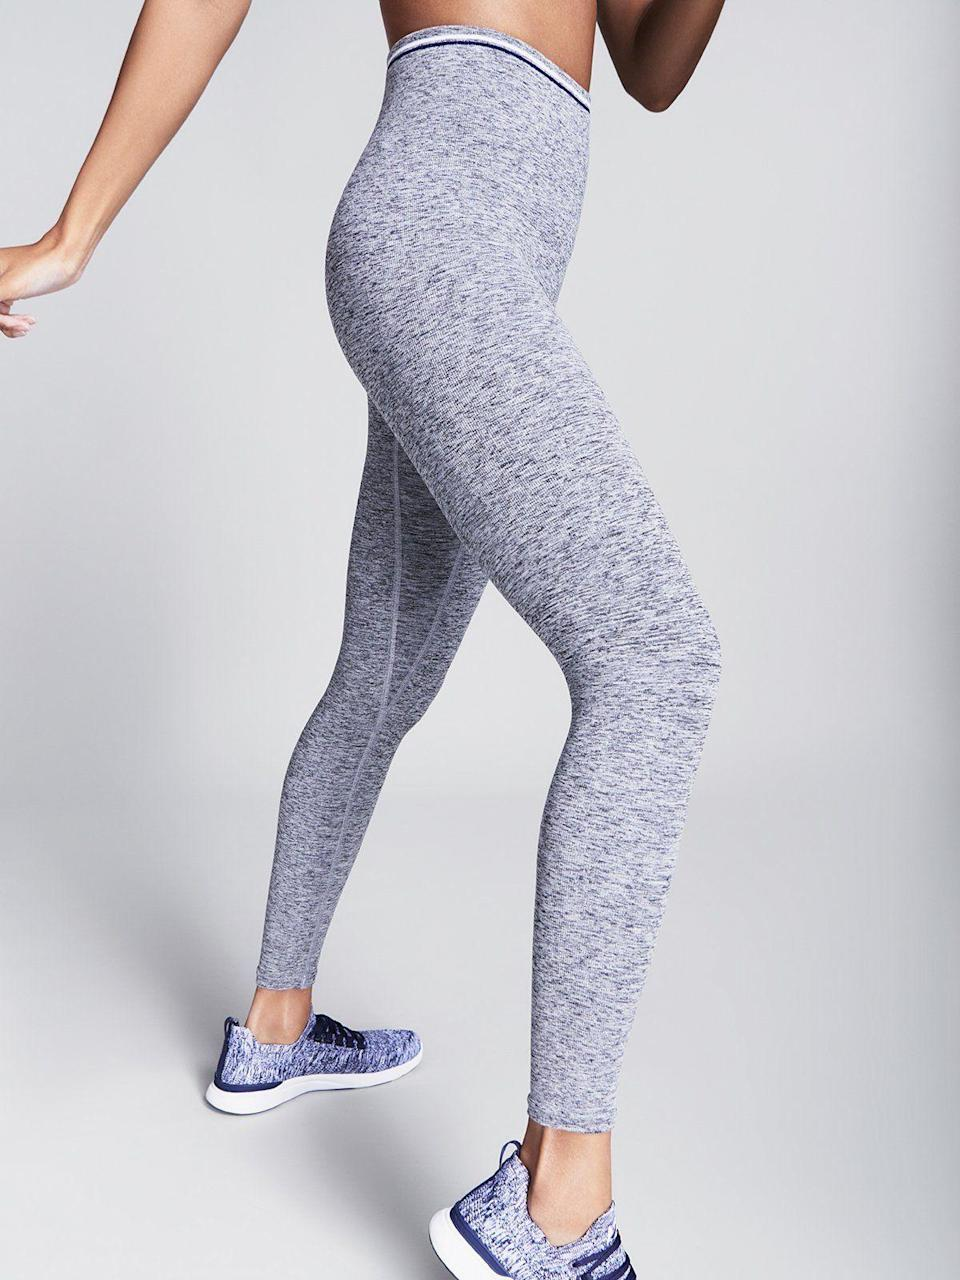 """<p><strong>LNDR</strong></p><p>lndr.us</p><p><strong>$118.00</strong></p><p><a href=""""https://www.lndr.us/collections/new-arrivals/products/blackout-stripe-legging-greymarl"""" rel=""""nofollow noopener"""" target=""""_blank"""" data-ylk=""""slk:Shop Now"""" class=""""link rapid-noclick-resp"""">Shop Now</a></p><p>Whether you're looking for leggings at every length, track pants, outerwear, or the perfect sports bra, this U.K.-based brand has it all—and it's all done in the clean, minimal designs. </p>"""